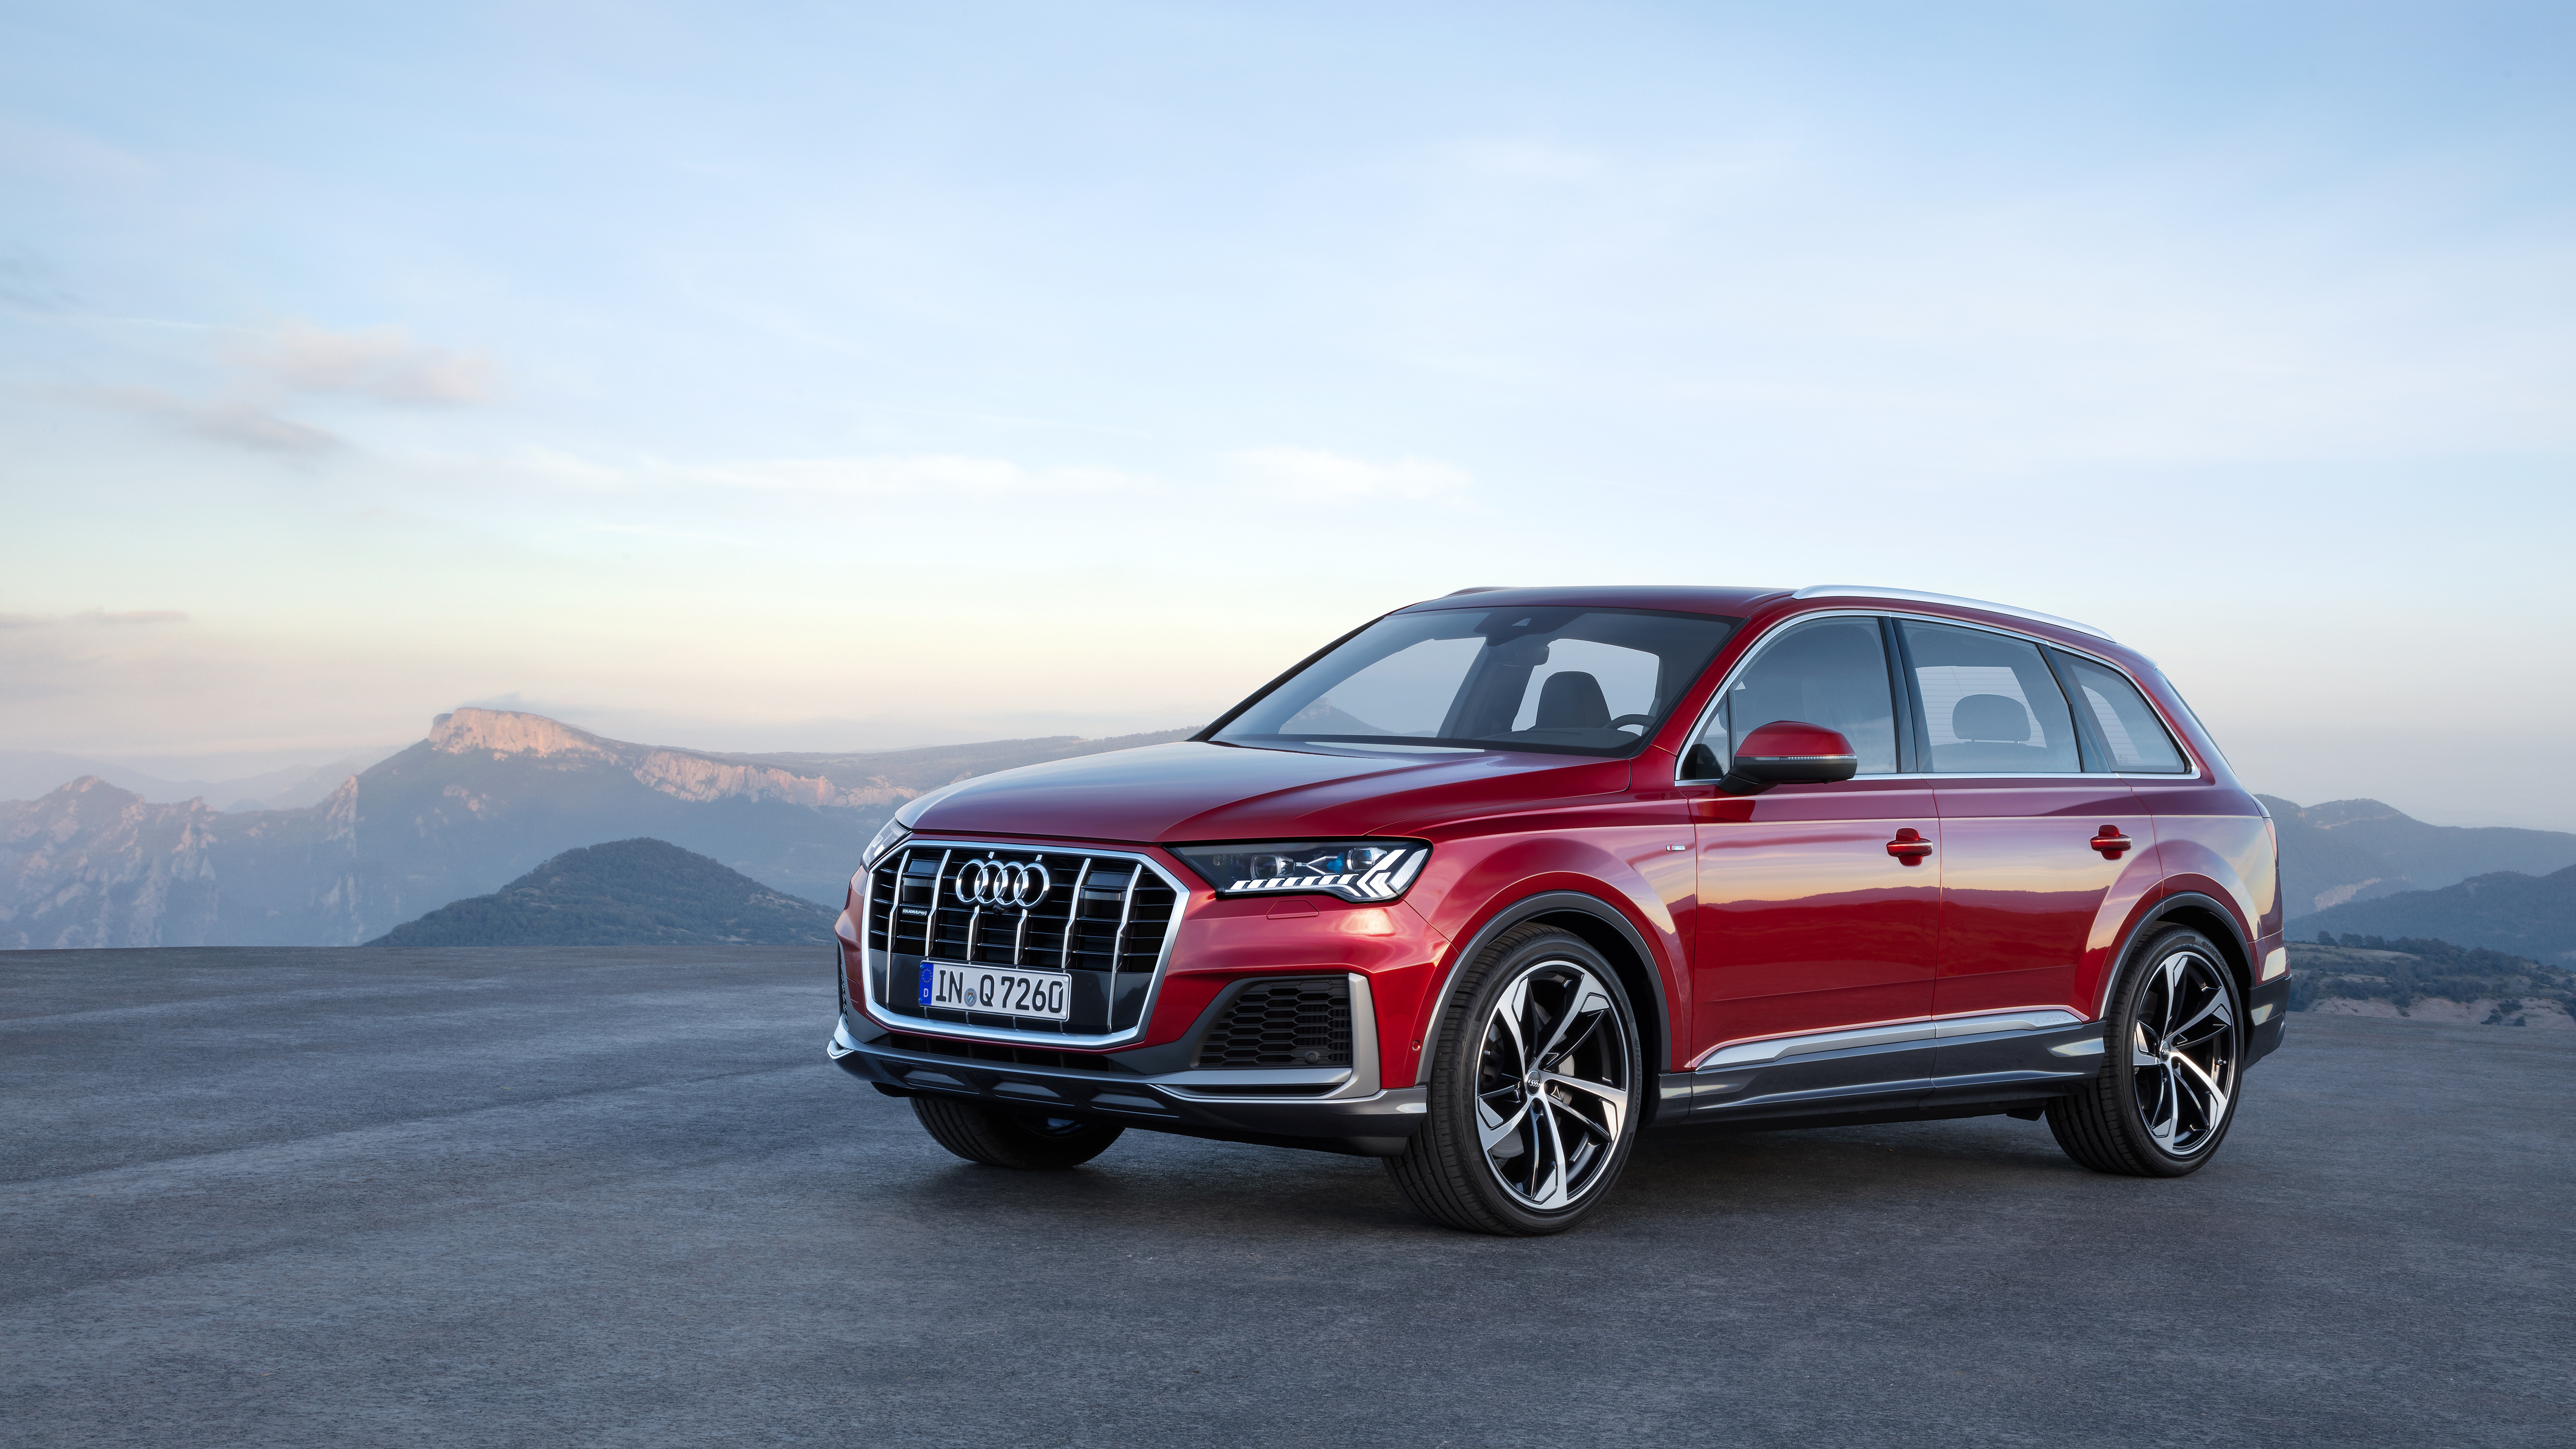 2020 Audi Q1 Release Date, Concept, Price, And Specs >> Audi Q7 Latest News Reviews Specifications Prices Photos And